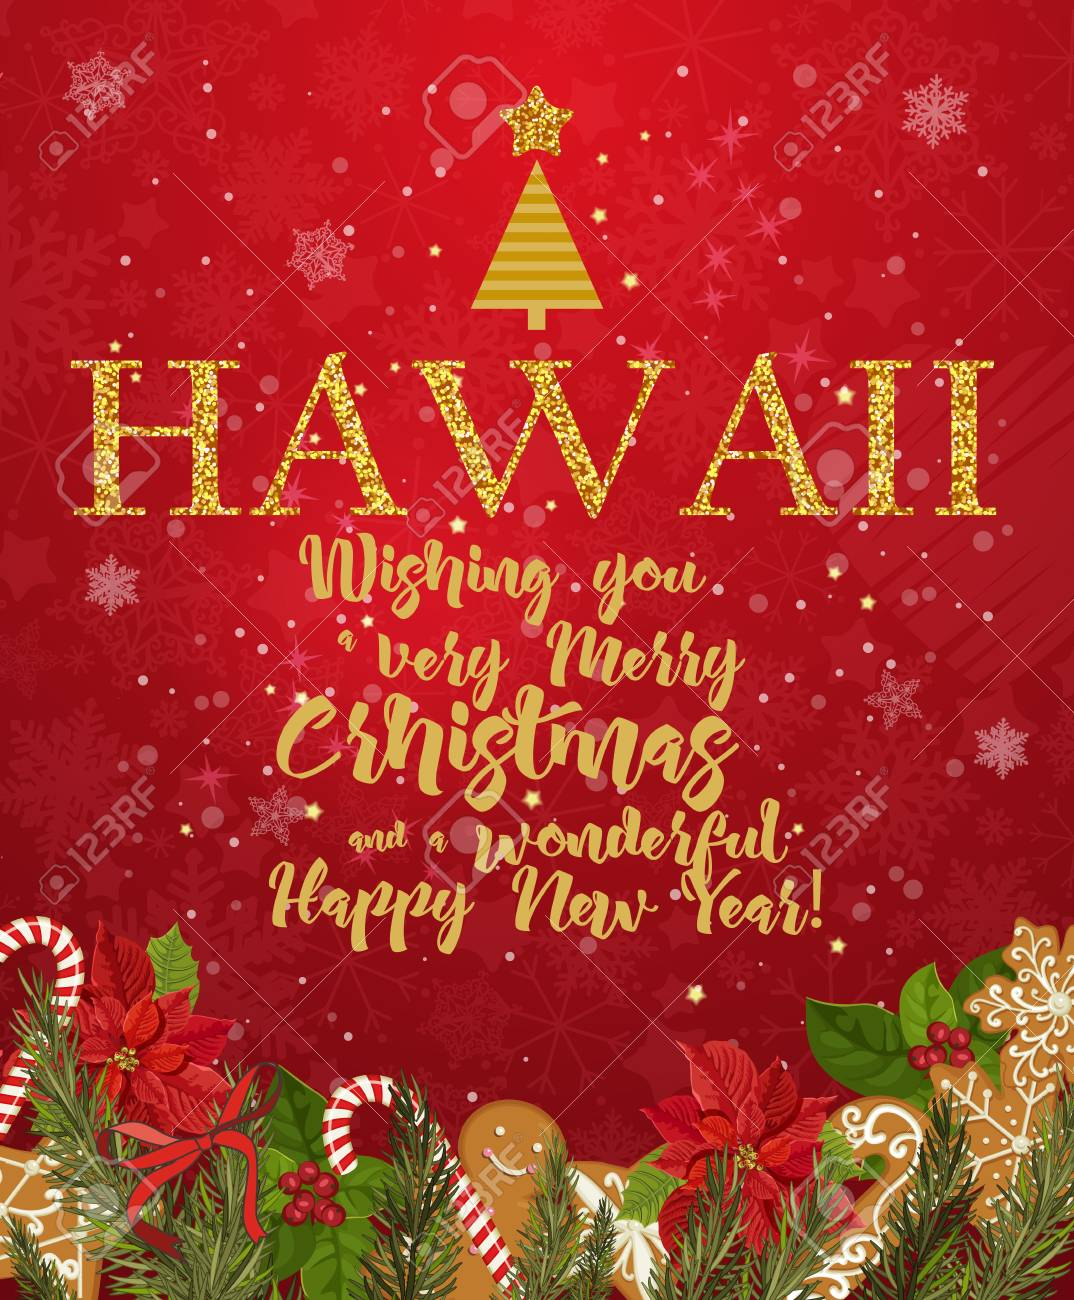 Hawaii Christmas.Hawaii Merry Christmas And A Happy New Year Greeting Vector Card